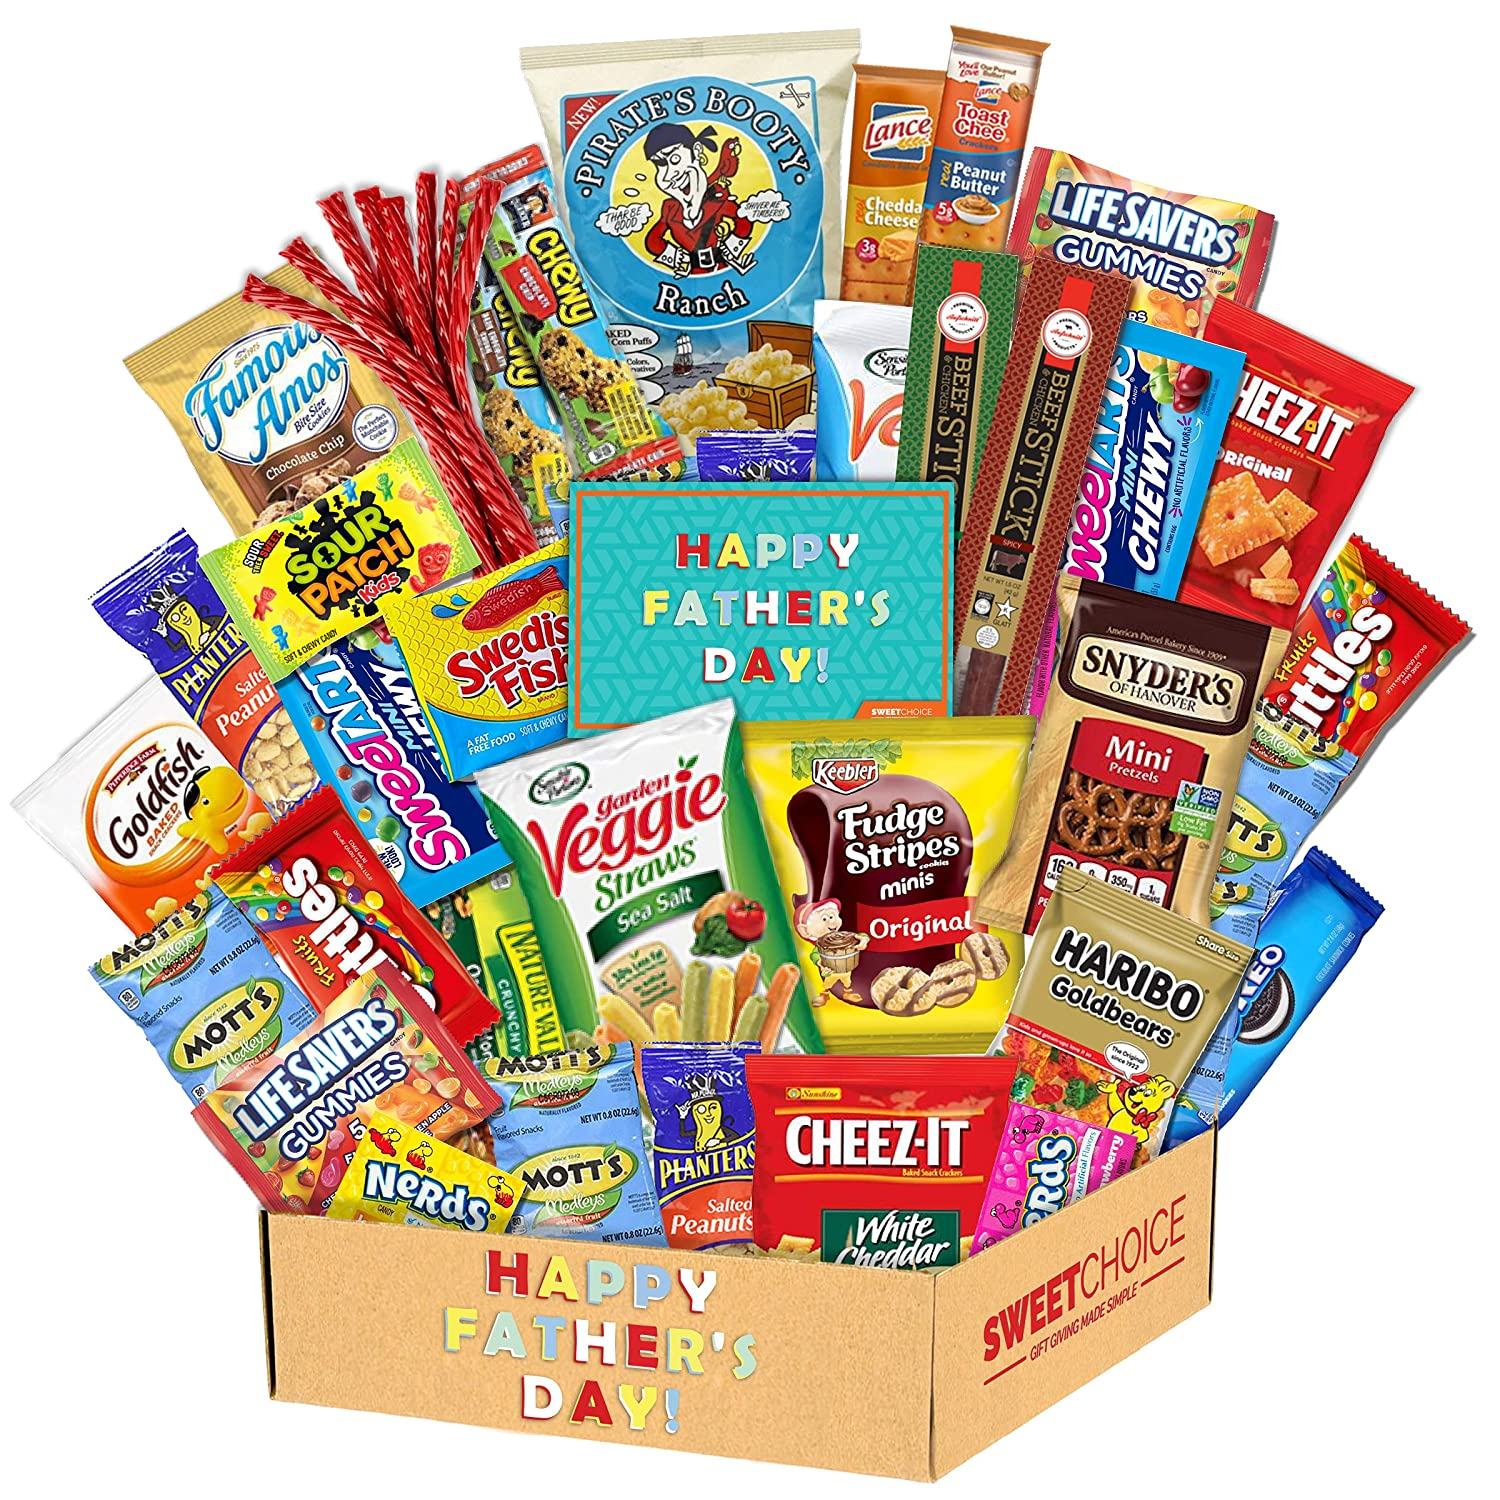 Fathers Day Gift Basket Gift For Dad Care Package (50 Count)Ultimate Men's box Sampler Mixed Bulk Bars,Beef Jerkey, Cookies, Chips, Candy Snacks Variety Box Pack Office Friends Family Military Treats